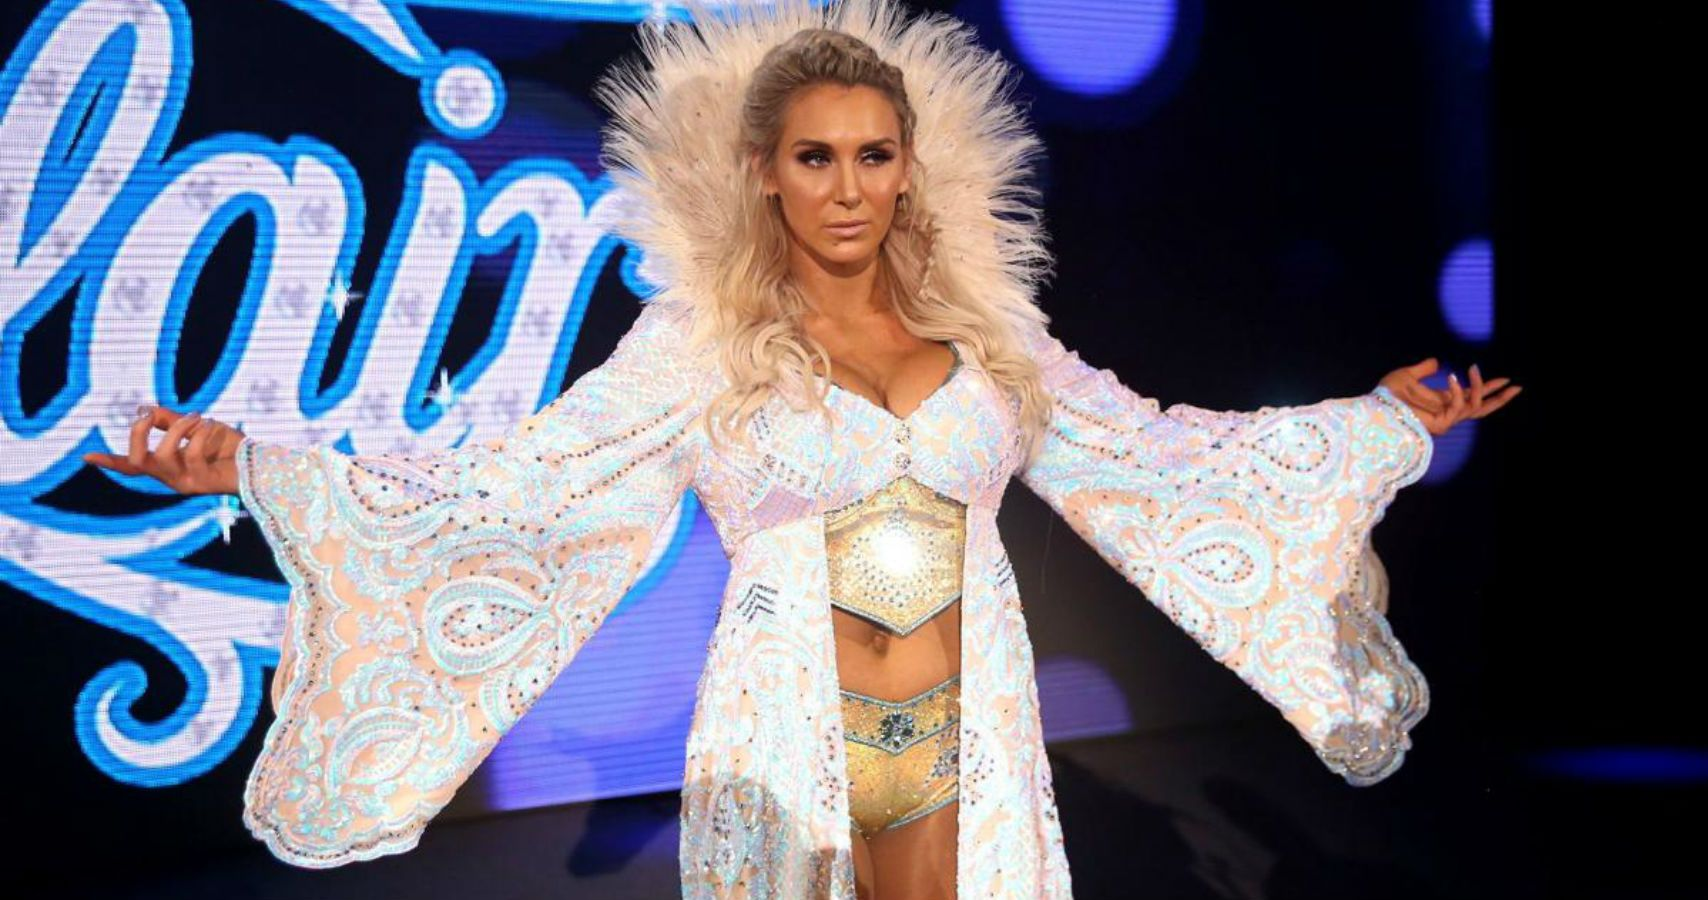 Charlotte Flair tells us why she's on every WWE show